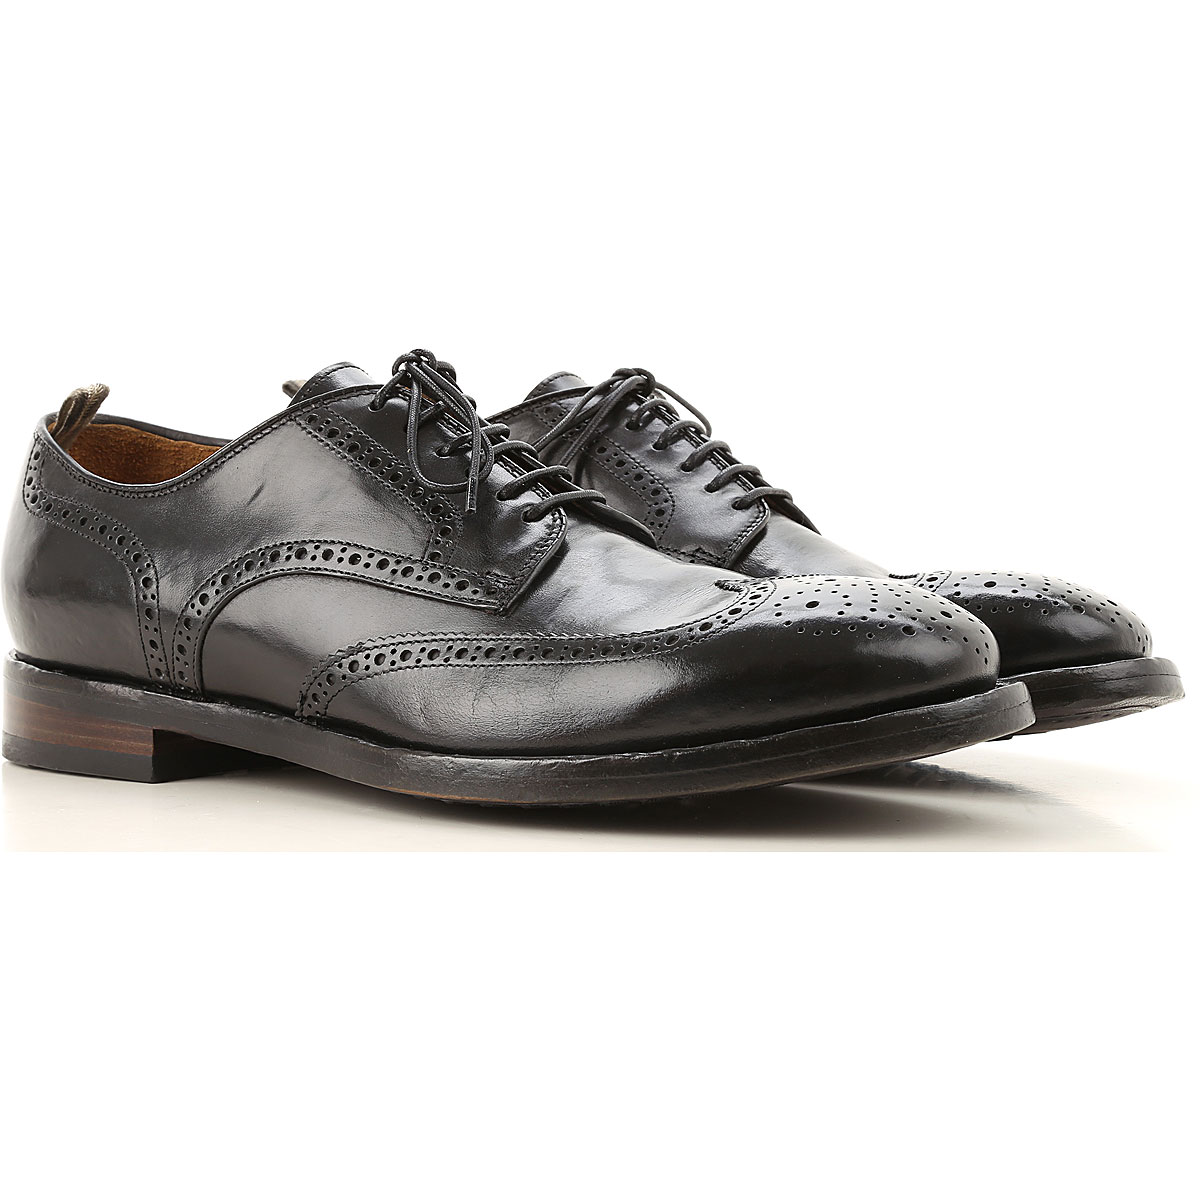 Officine Creative Lace Up Shoes for Men Oxfords, Derbies and Brogues, Black, Leather, 2019, 10.5 11 8 8.5 9